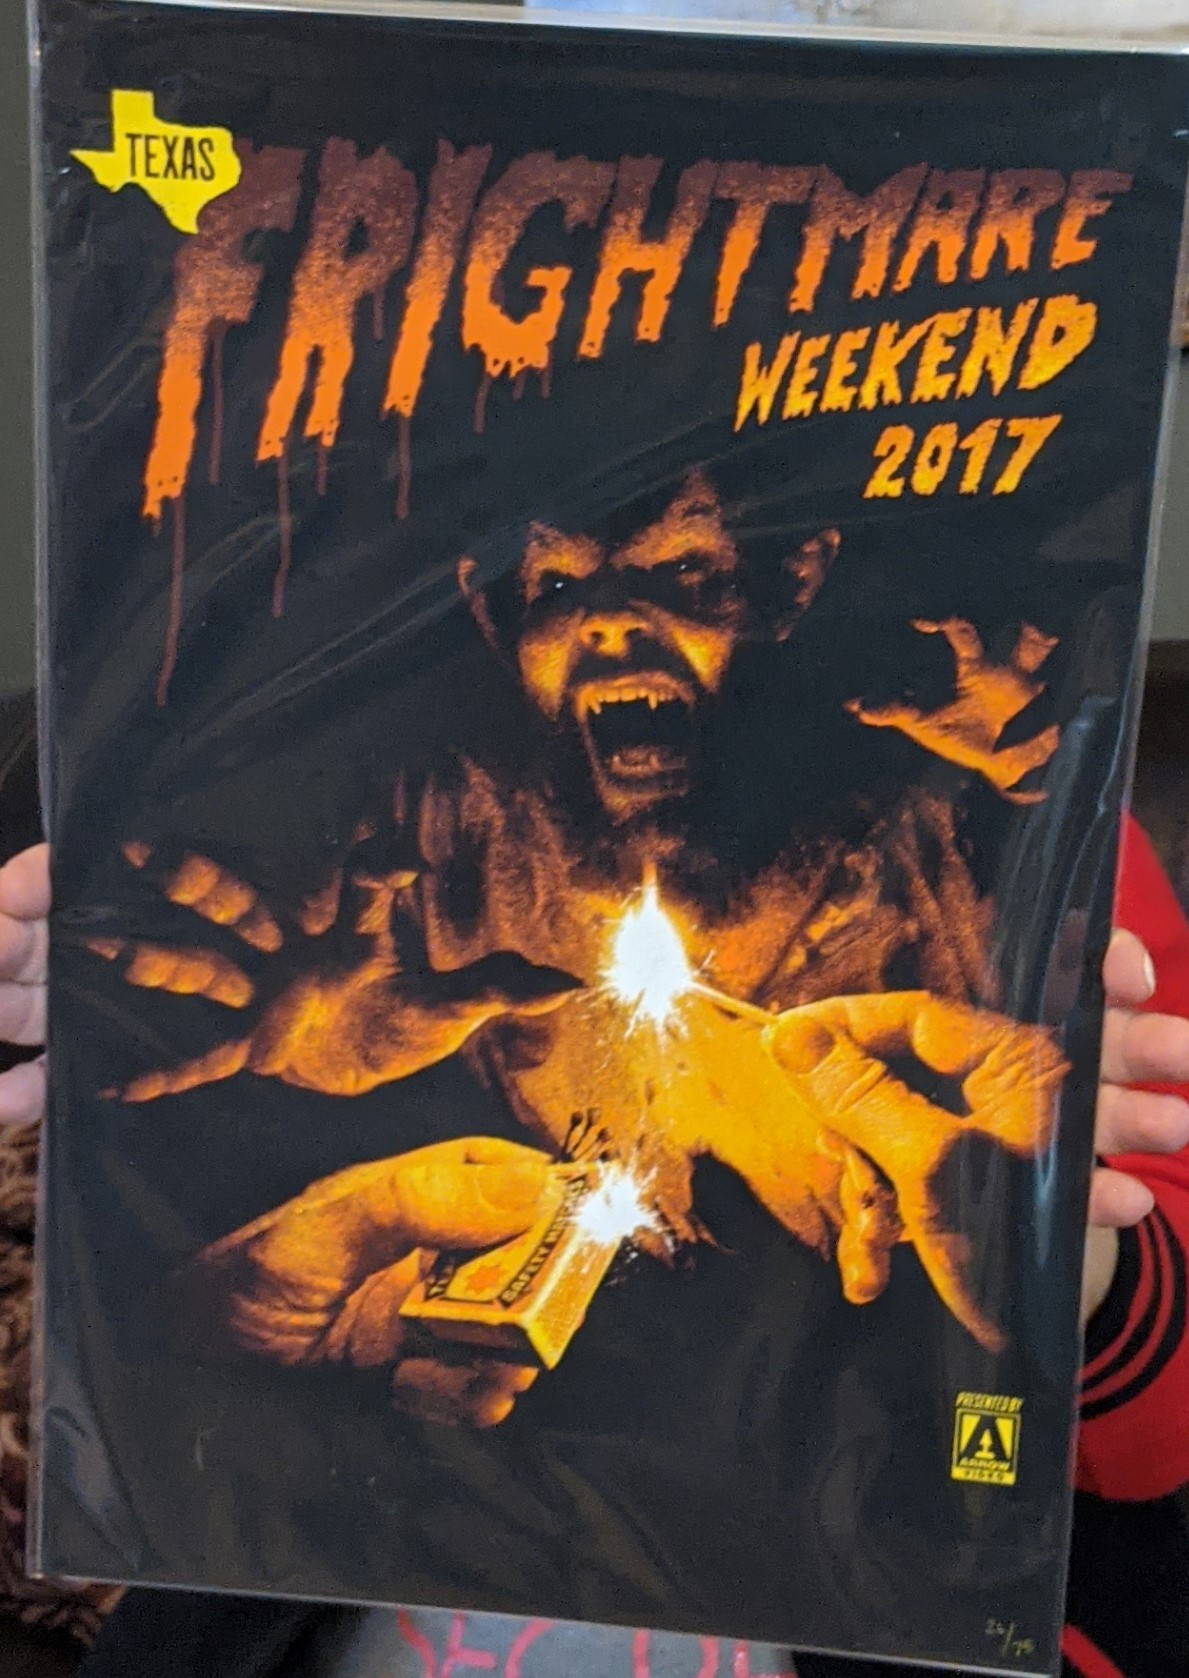 Texas Frightmare Weekend 2017 Poster Print